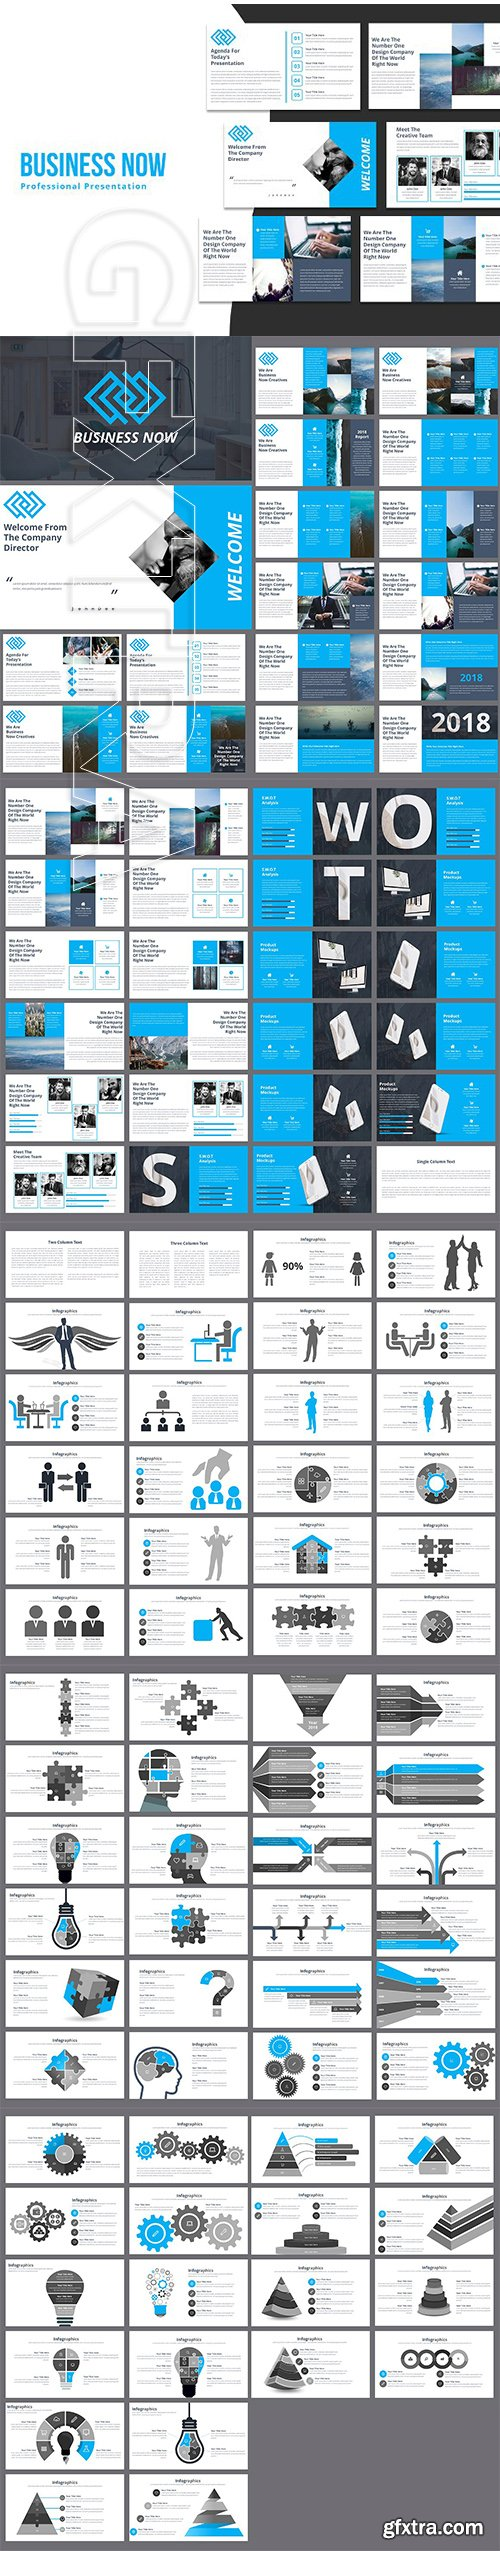 CreativeMarket - Business Now Powerpoint Template 2967679